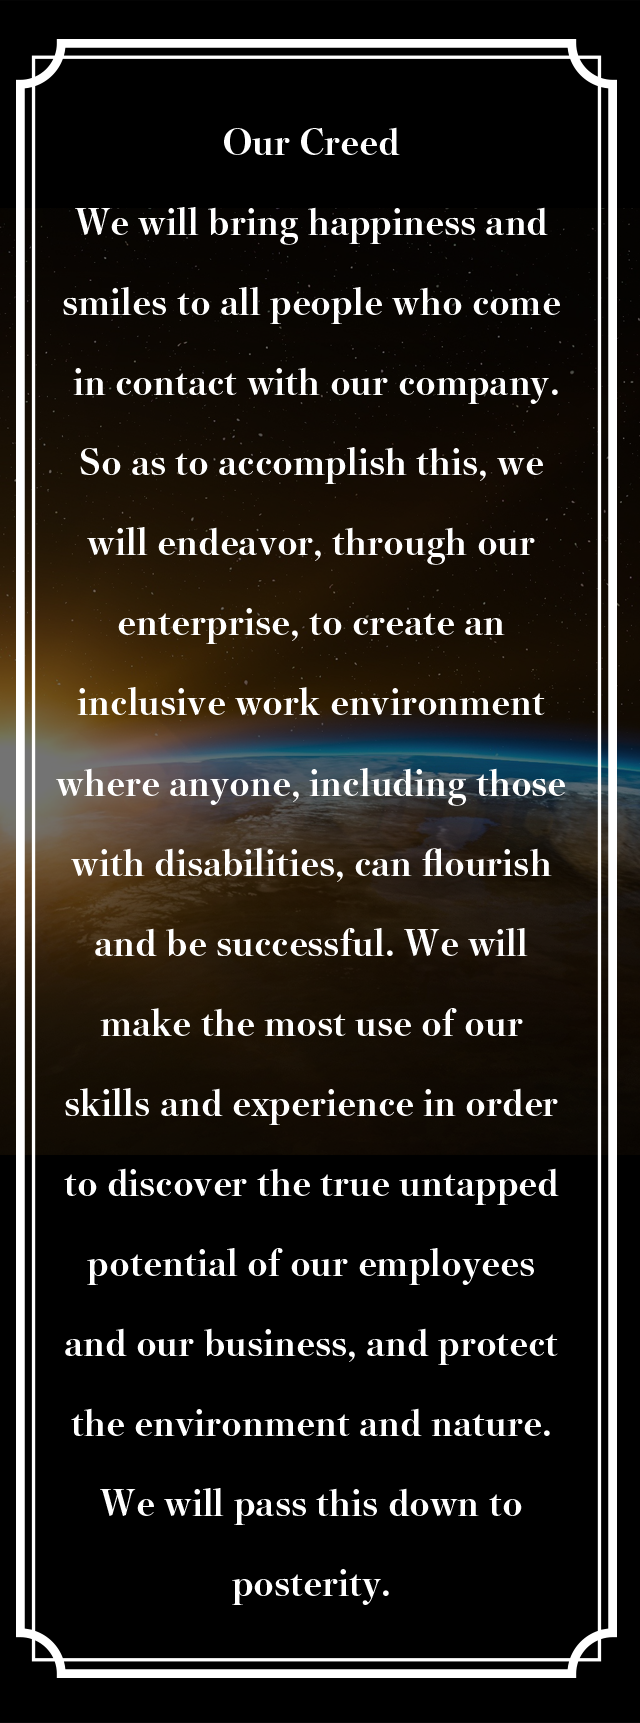 Our Creed We will bring happiness and smiles to all people who come in contact with our company.So as to accomplish this, we will endeavor, through our enterprise, to create an inclusive work environment where anyone, including those with disabilities, can flourish and be successful. We will make the most use of our skills and experience in order to discover the true untapped potential of our employees and our business, and protect the environment and nature. We will pass this down to posterity.